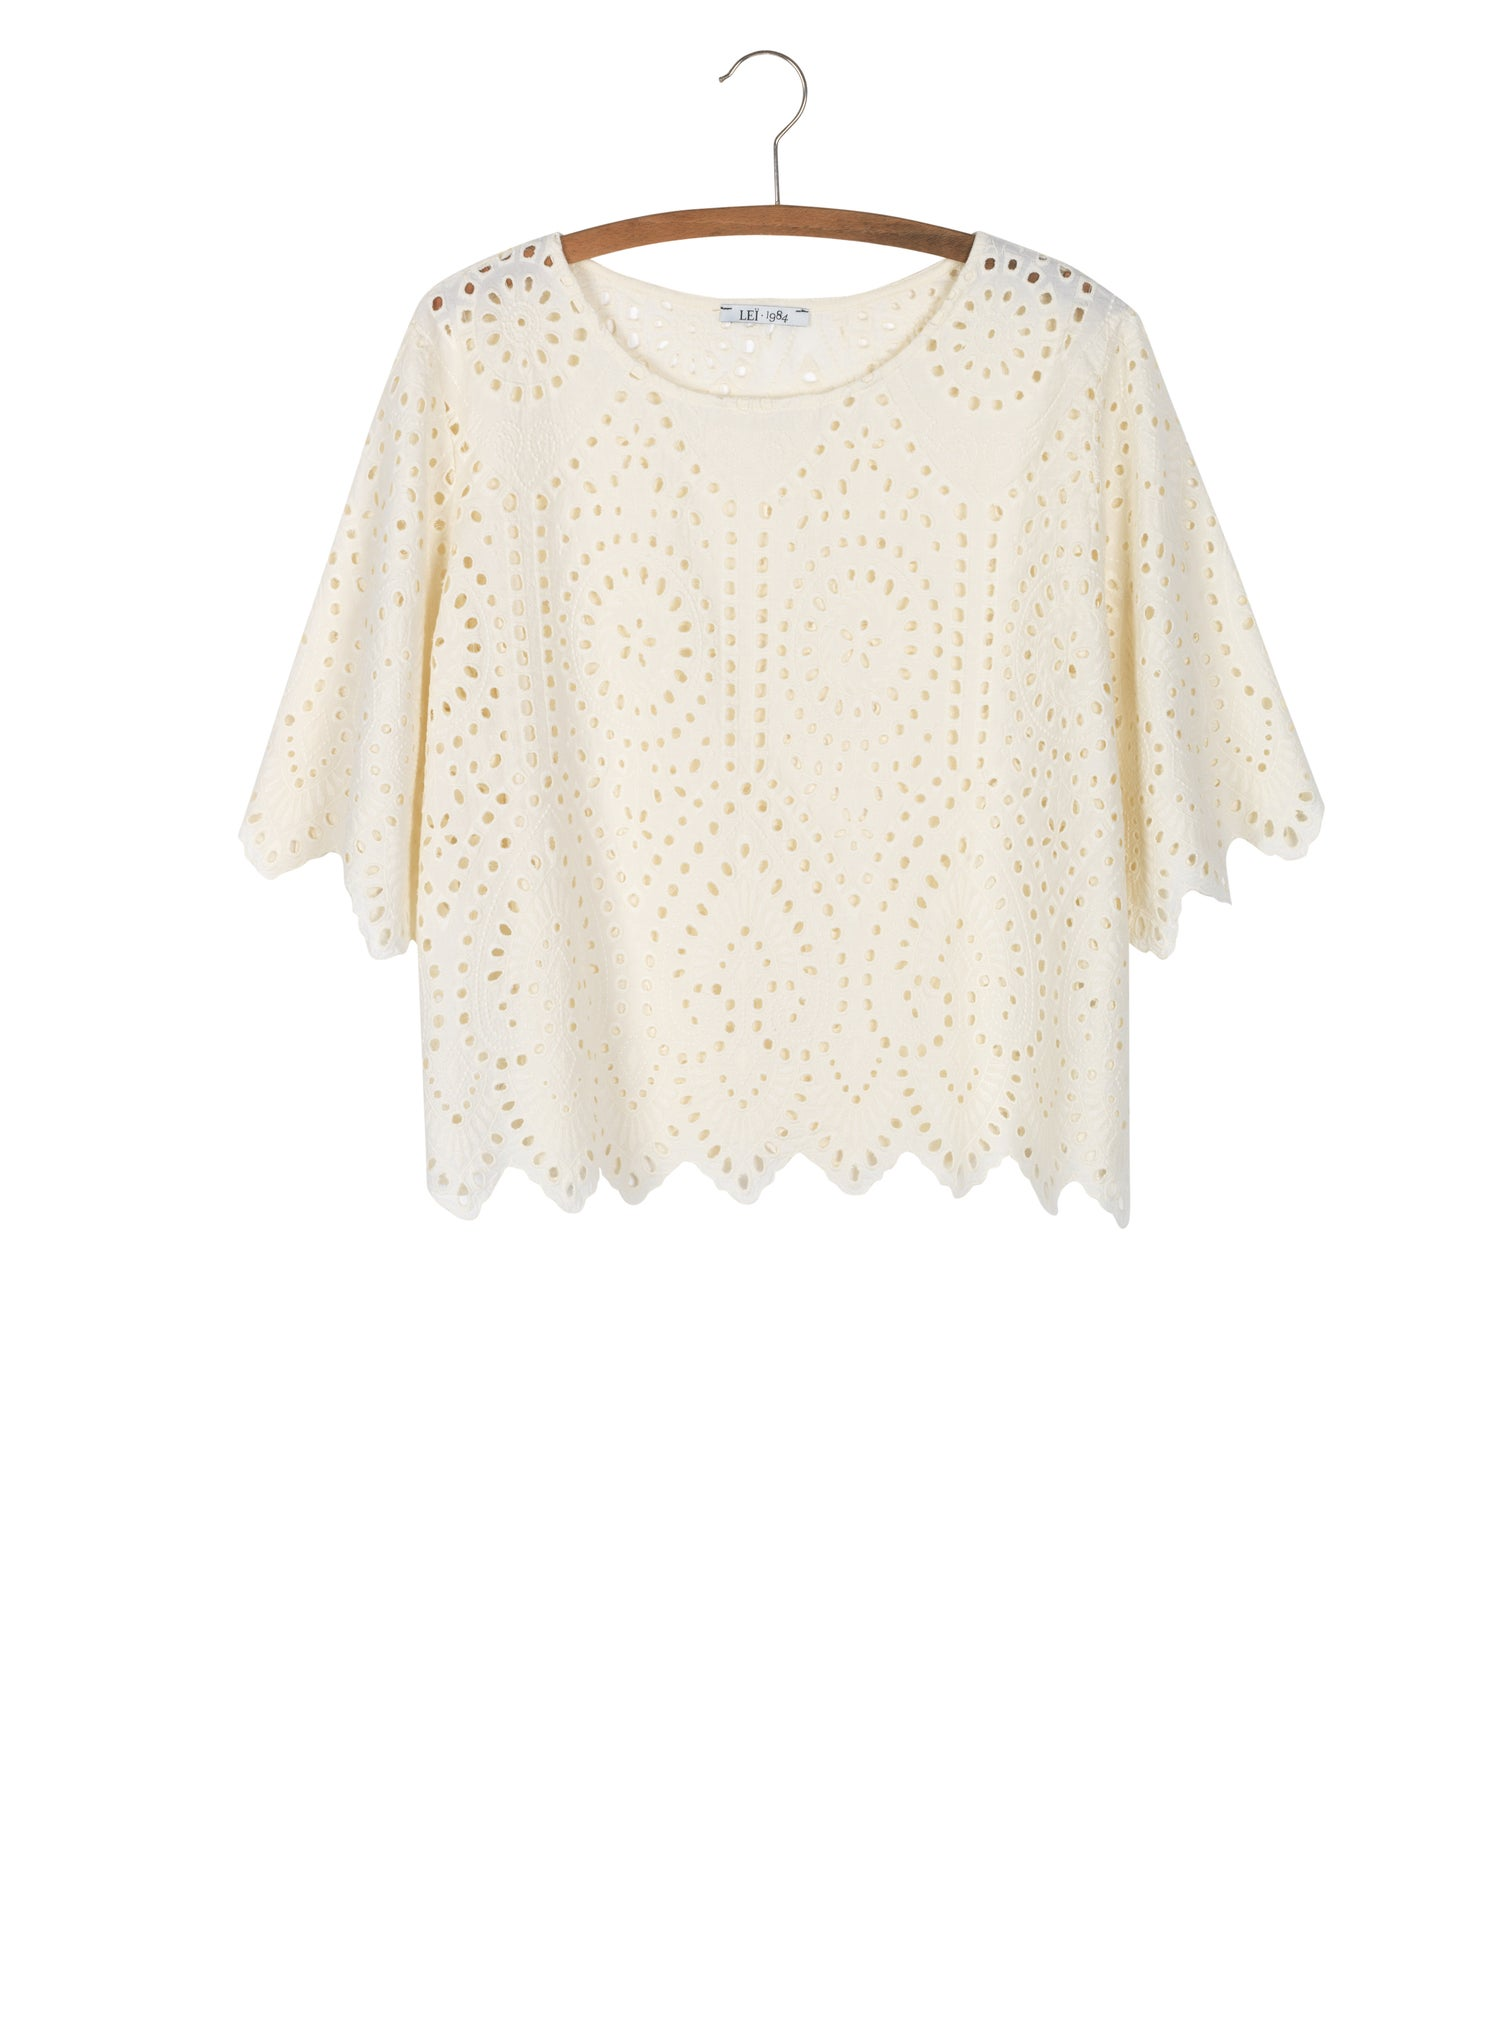 Image of Top MARIA 125€ -30%